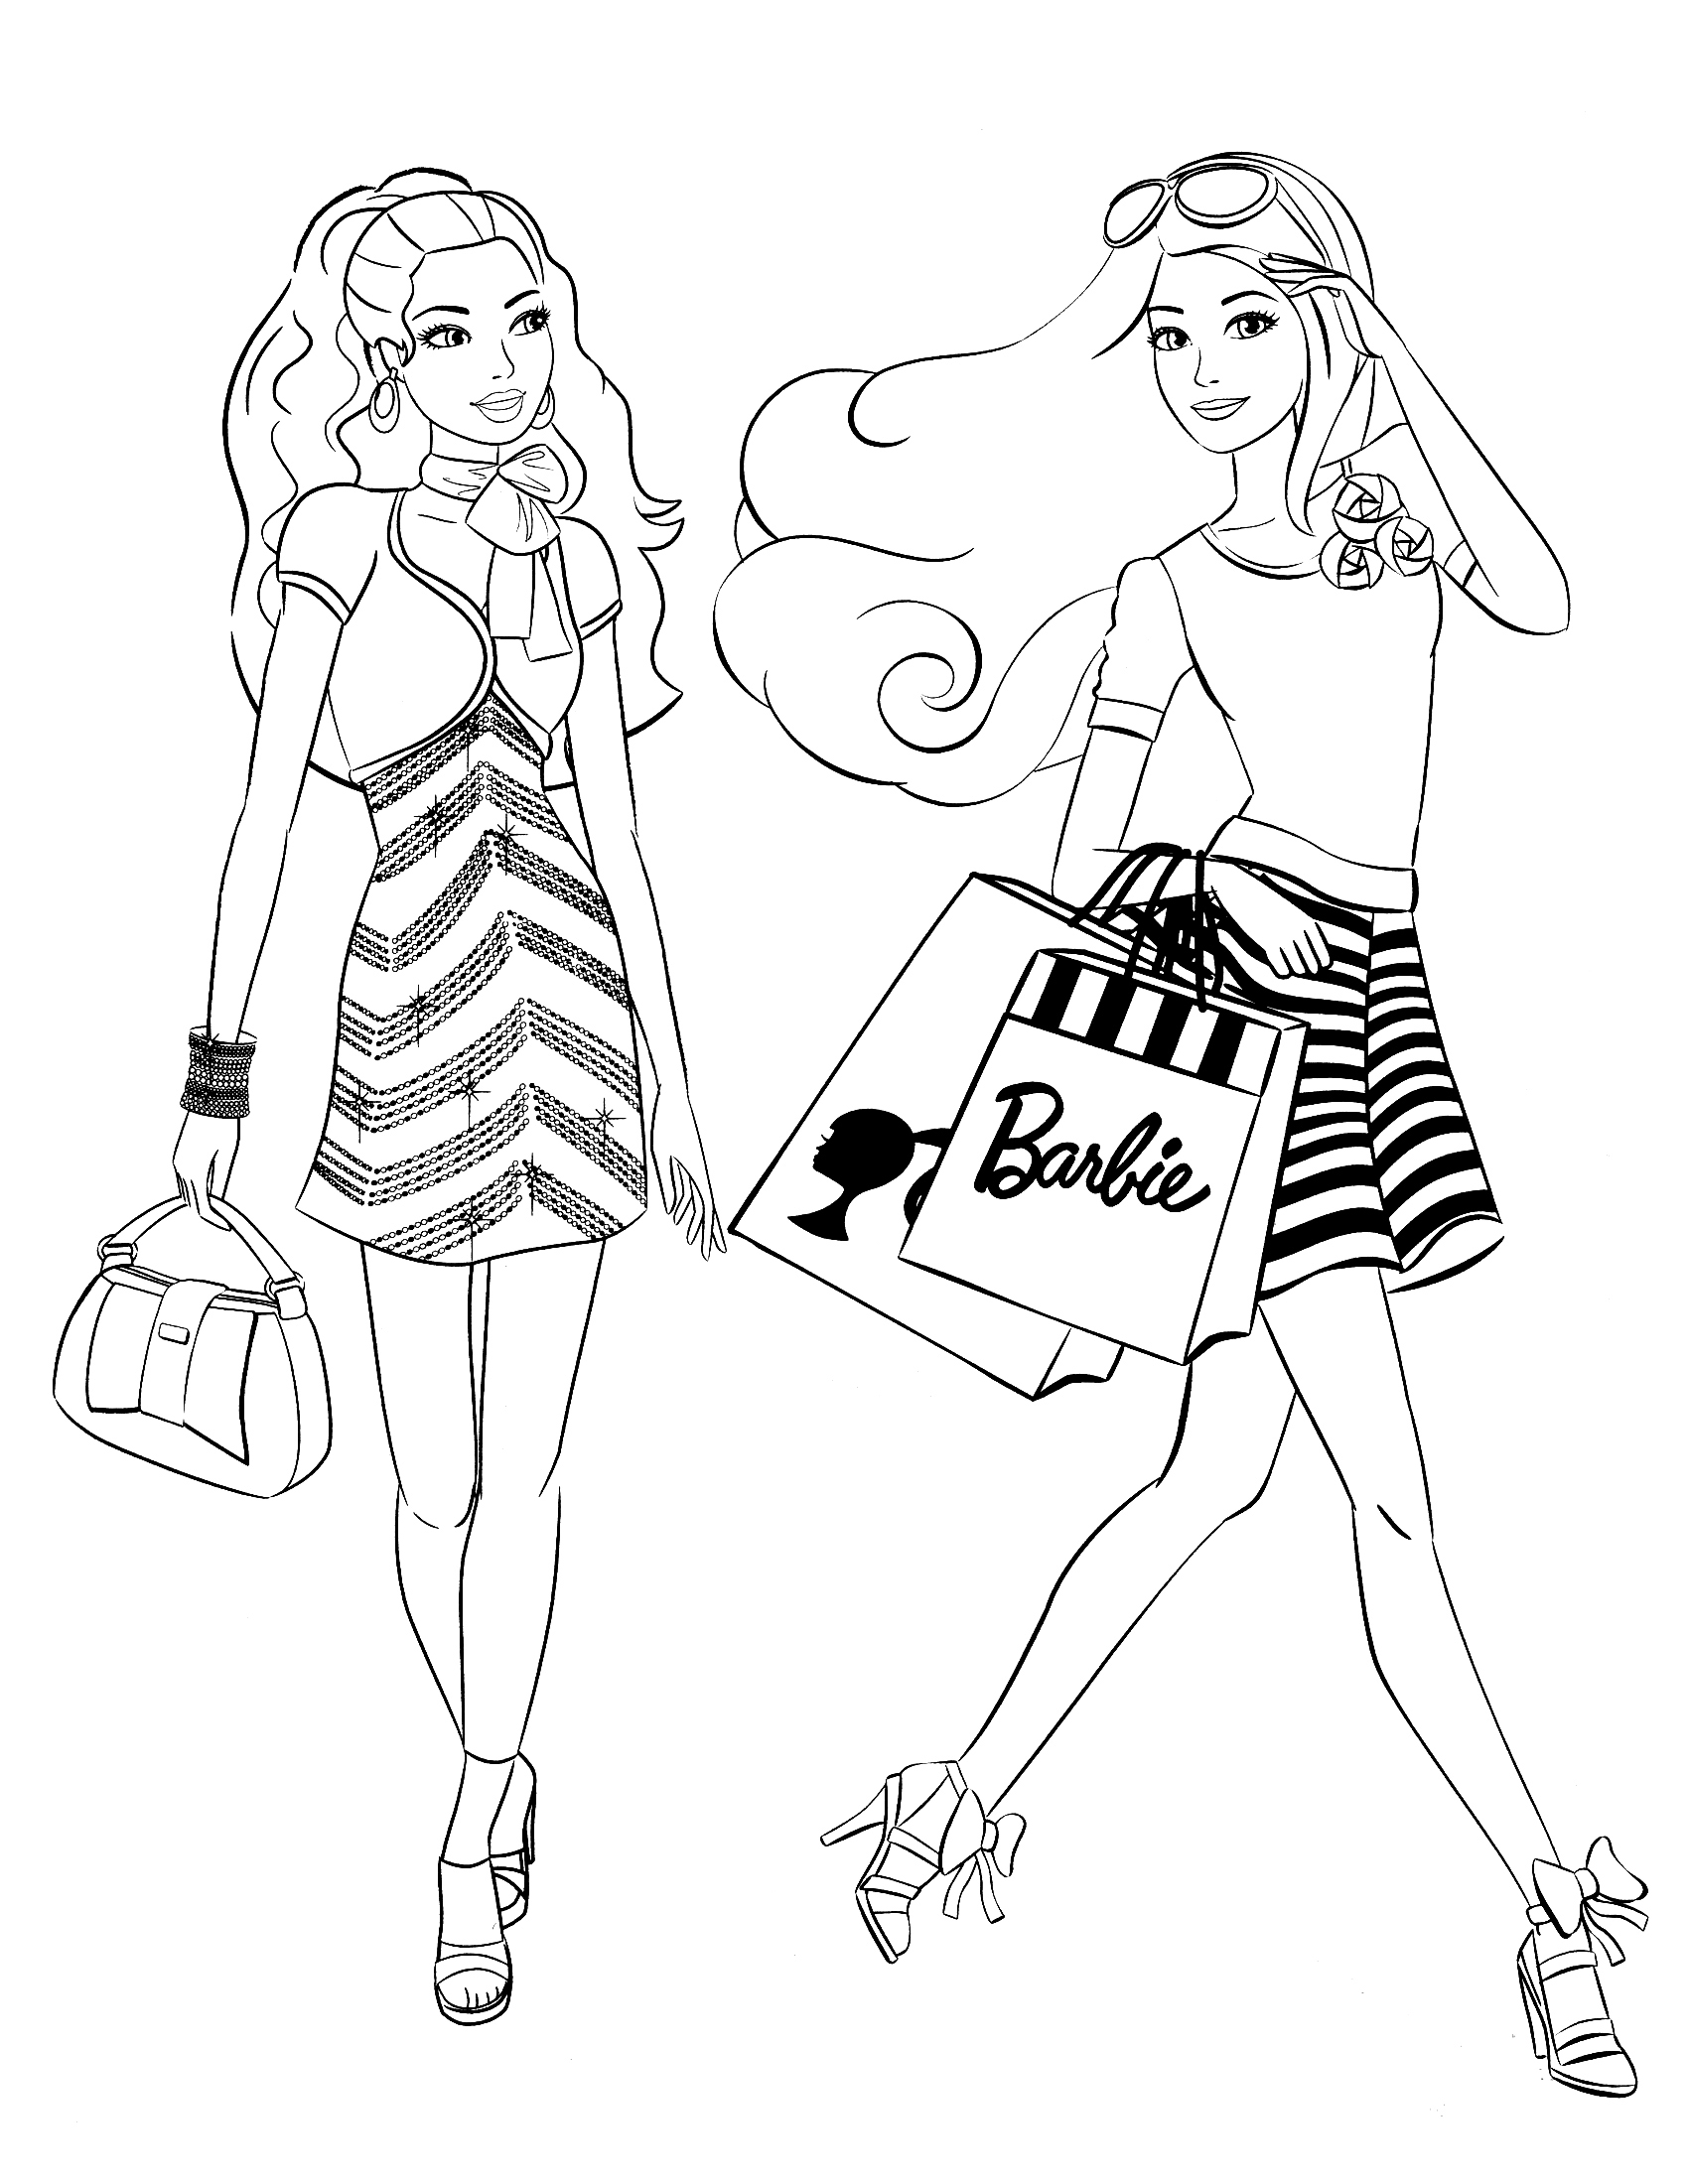 Barbie Coloring Pages Coloringsuite Download Of Christmas Shopping Coloring Page Download